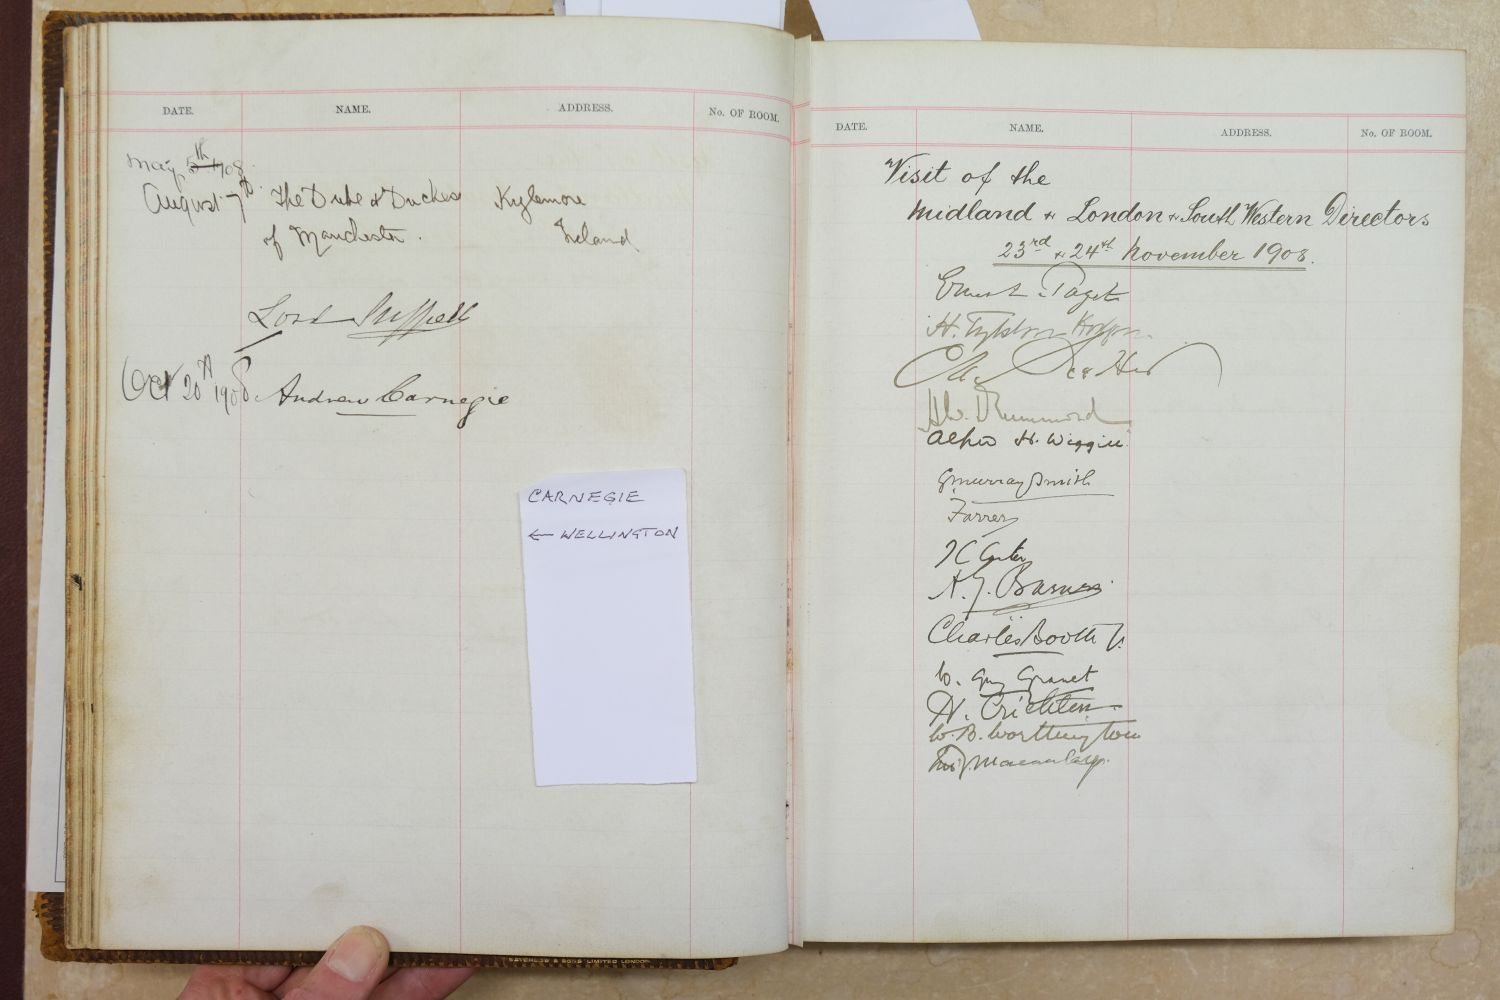 Visitors' Book. South Western Hotel, Southampton. A visitors' book, circa 1899-1912 - Image 15 of 16